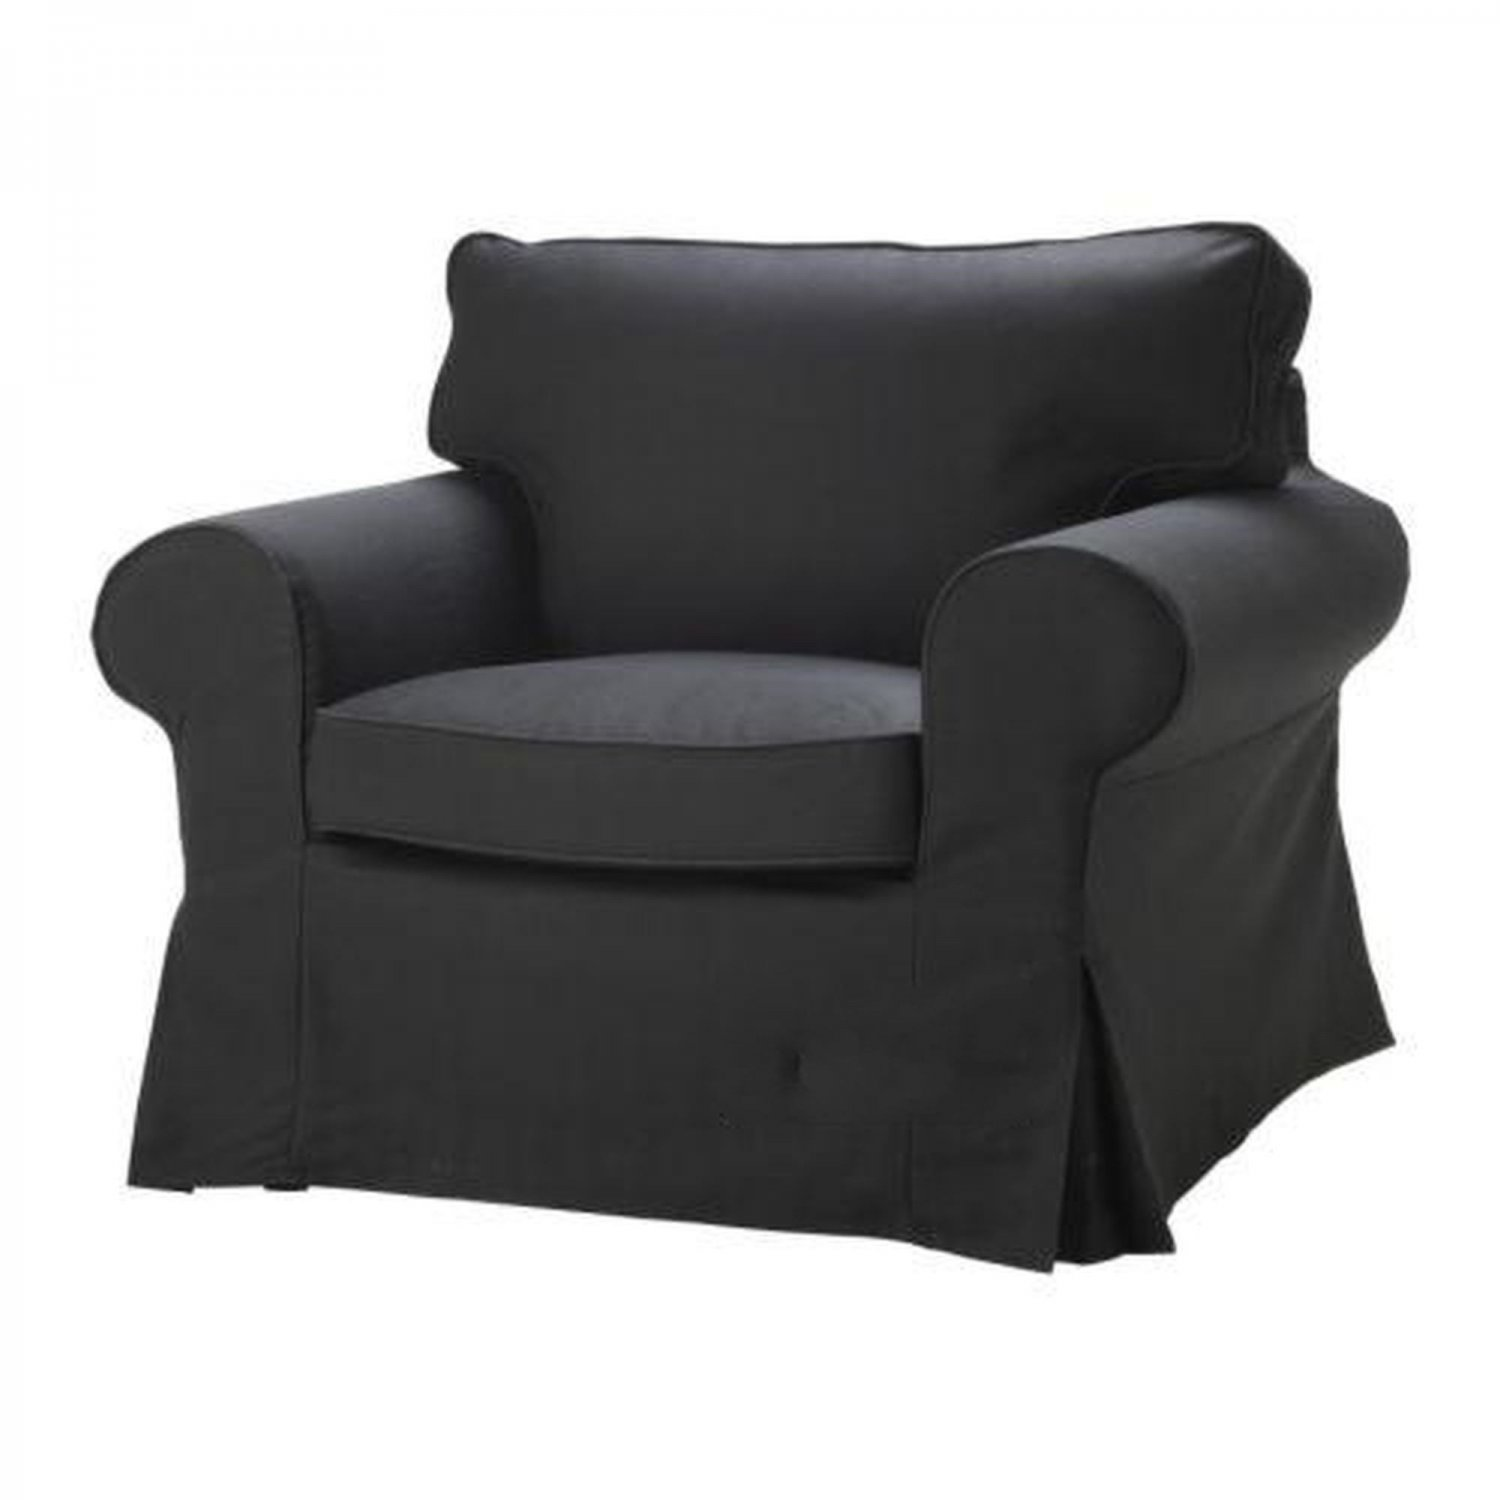 ikea ektorp armchair slipcover idemo black chair cover. Black Bedroom Furniture Sets. Home Design Ideas